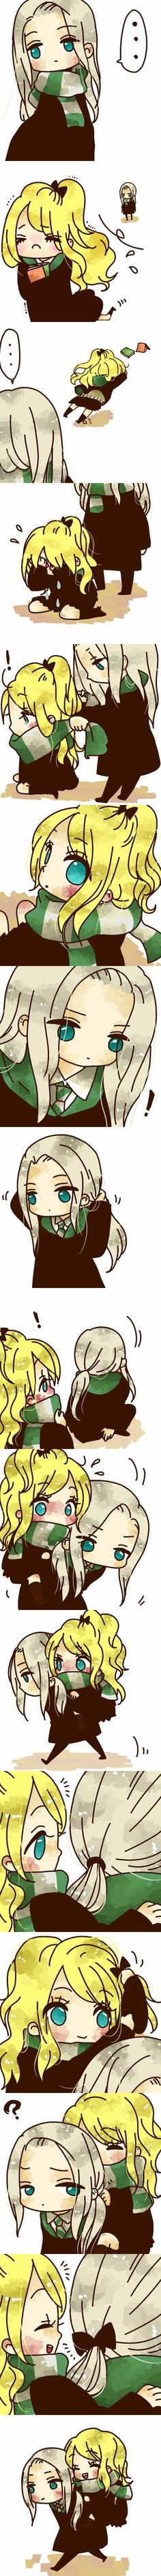 Who knew such words could ever be used to describe Lucius Malfoy and Narcissa Black Malfoy from the Harry Potter series by J. Harry Potter Anime, Harry Potter Fan Art, Harry Potter Universal, Harry Potter Fandom, Slytherin, Hogwarts, Dramione, Draco, Severus Snape